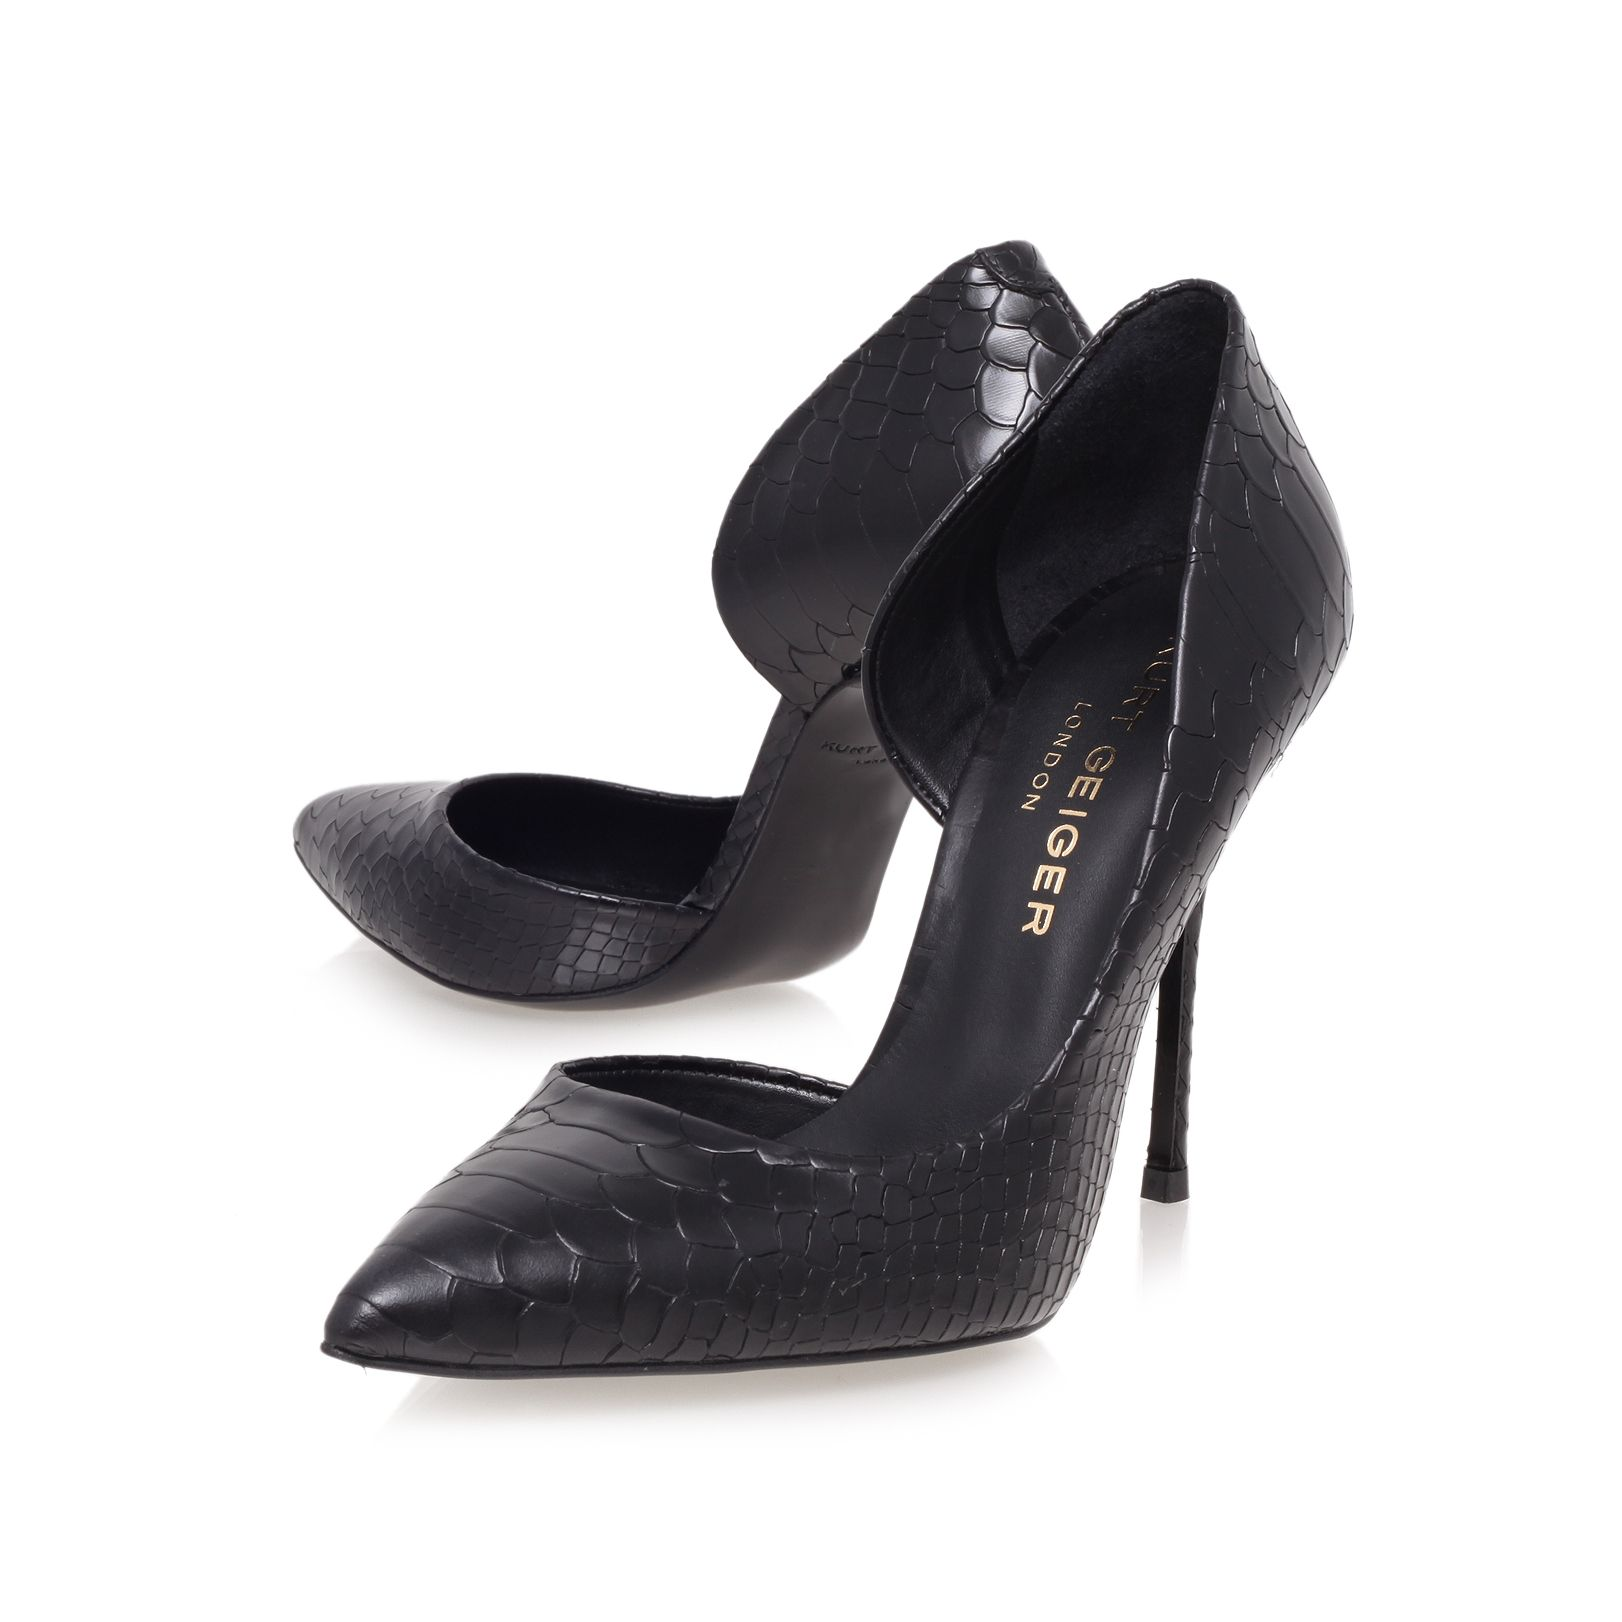 Anja high heel court shoes